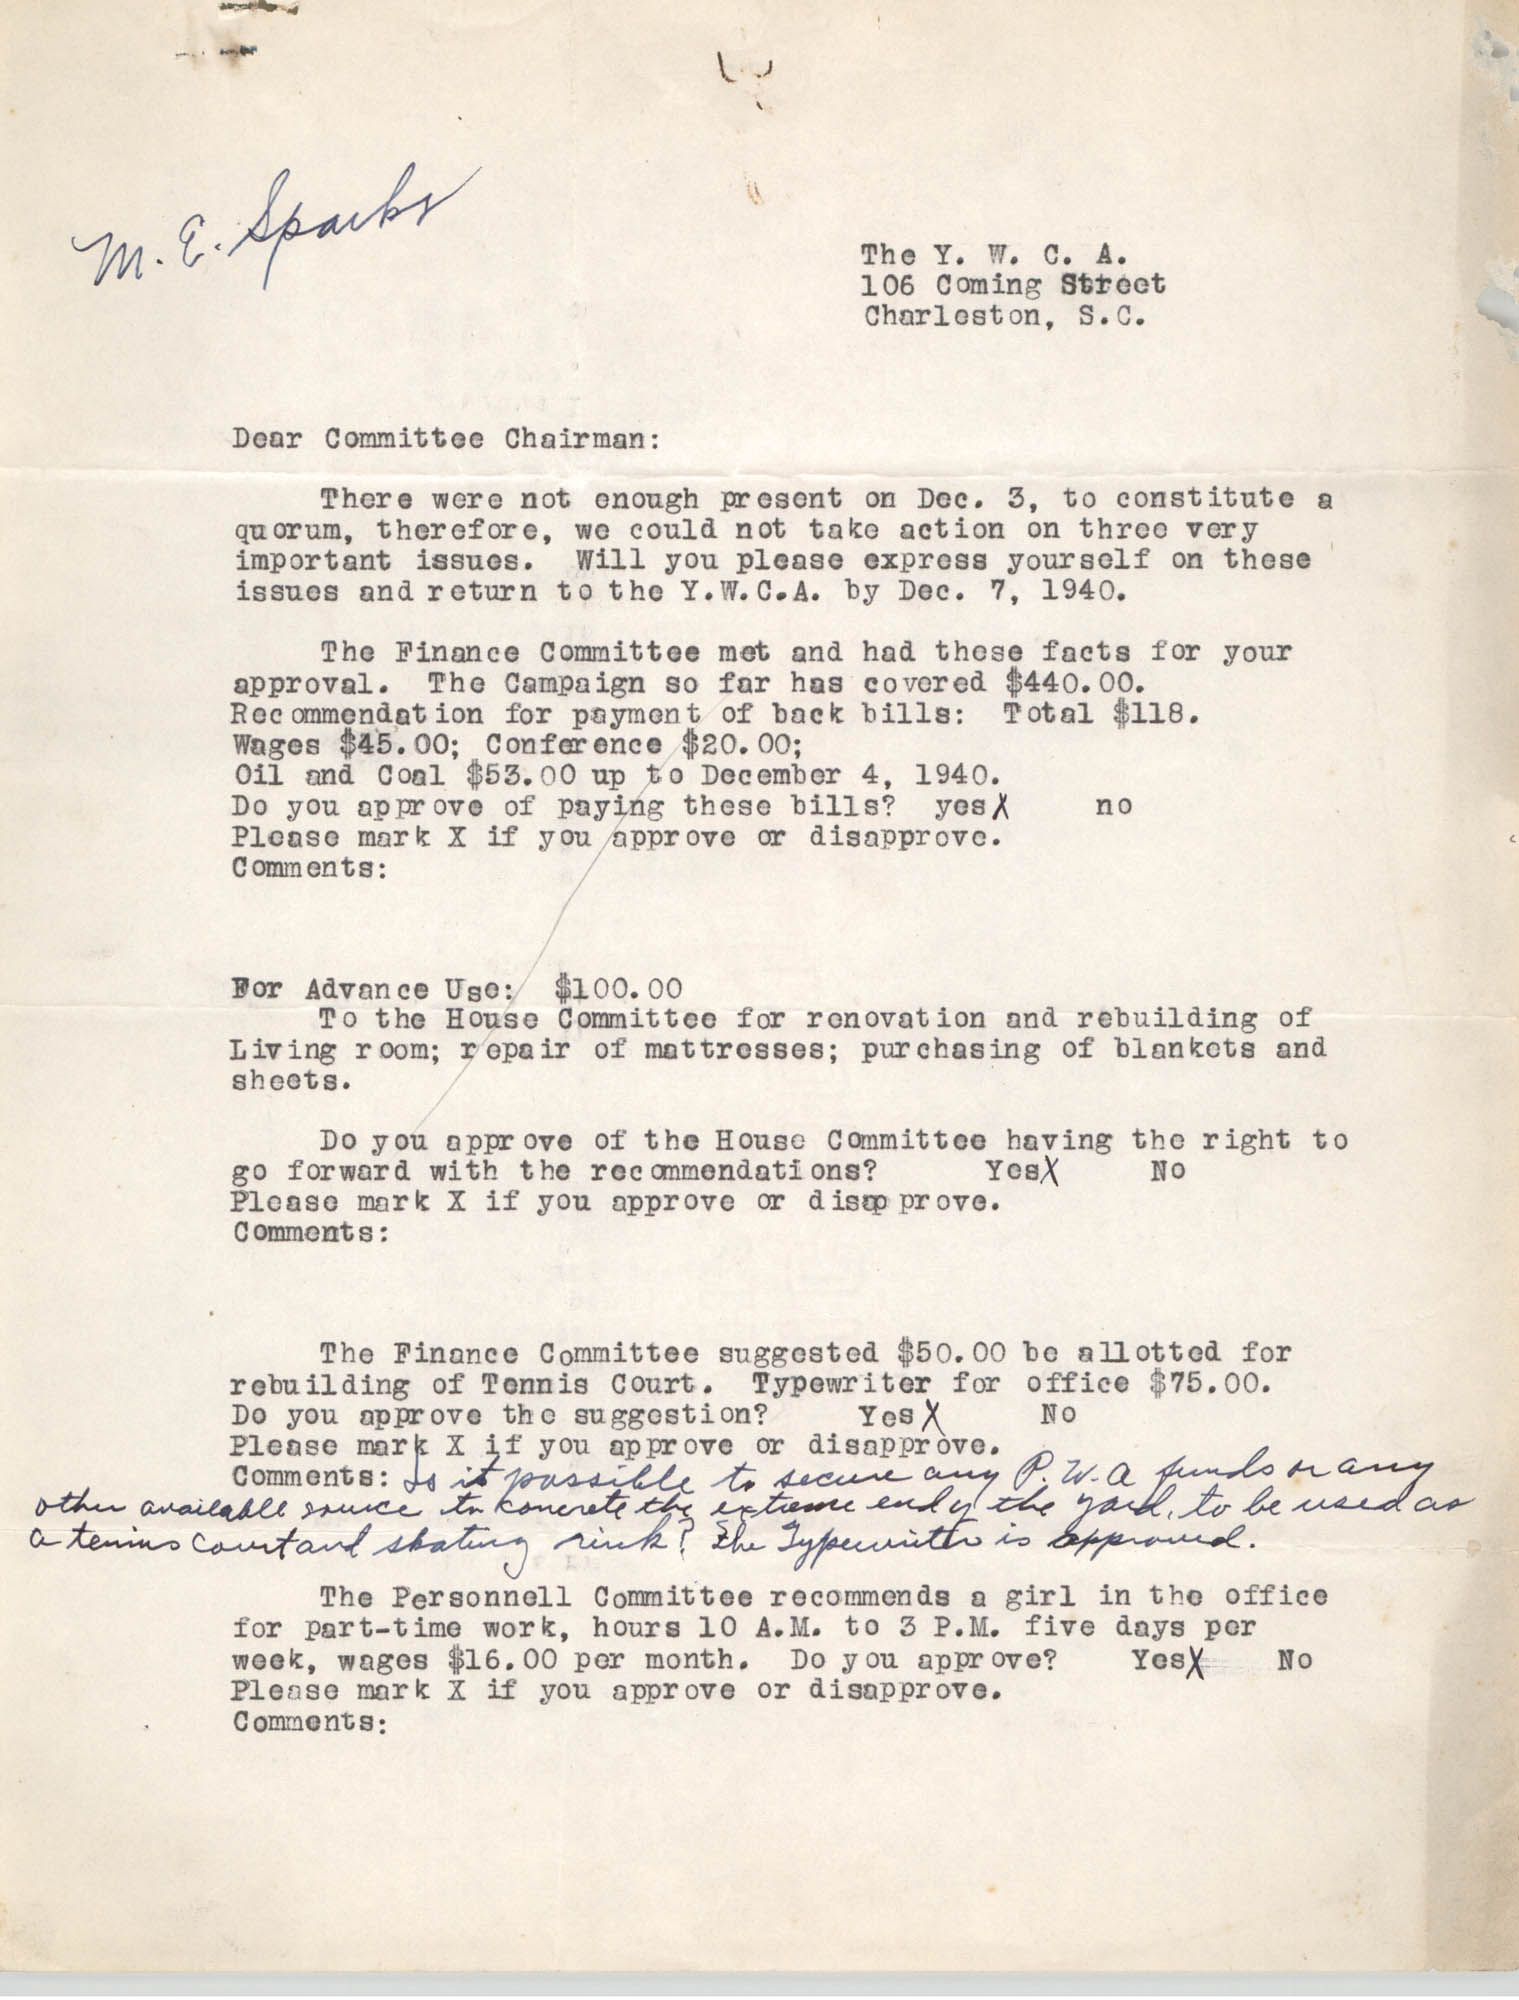 Letter from Daisy Frost and M. L. Harrinton to Committee Chairman of the Coming Street Y.W.C.A.